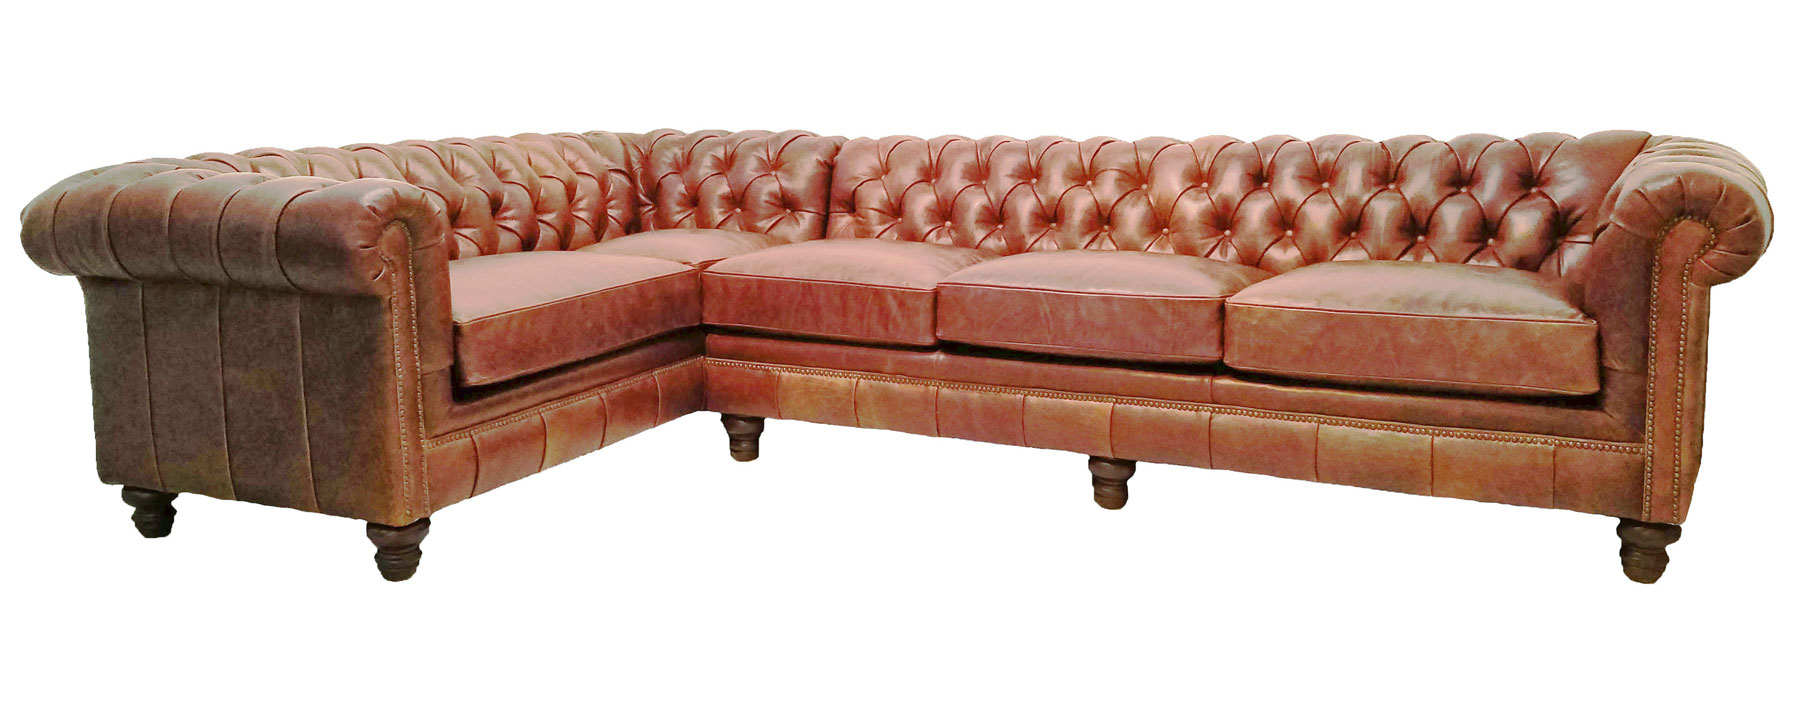 Galloway Chesterfield Leather Sectional Leather  : galloway chesterfield leather sectional 2 from www.clubfurniture.com size 1800 x 720 jpeg 178kB